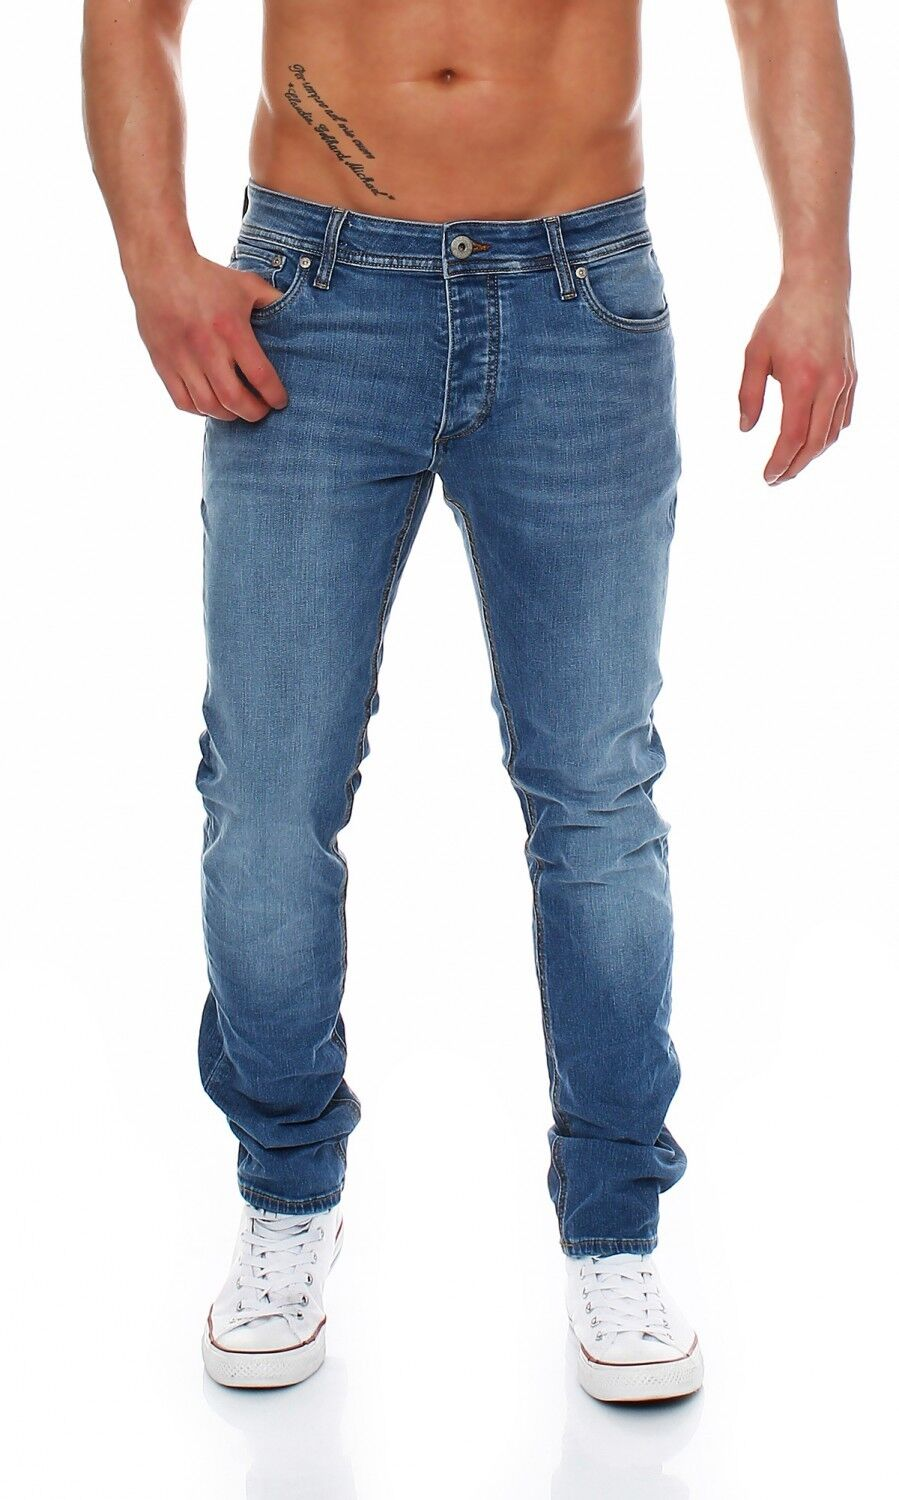 cbff7825bb55e0 JACK and JONES - TIM ORIGINAL - AM420 Mittelblau - Herren Jeans Hose Slim  Fit